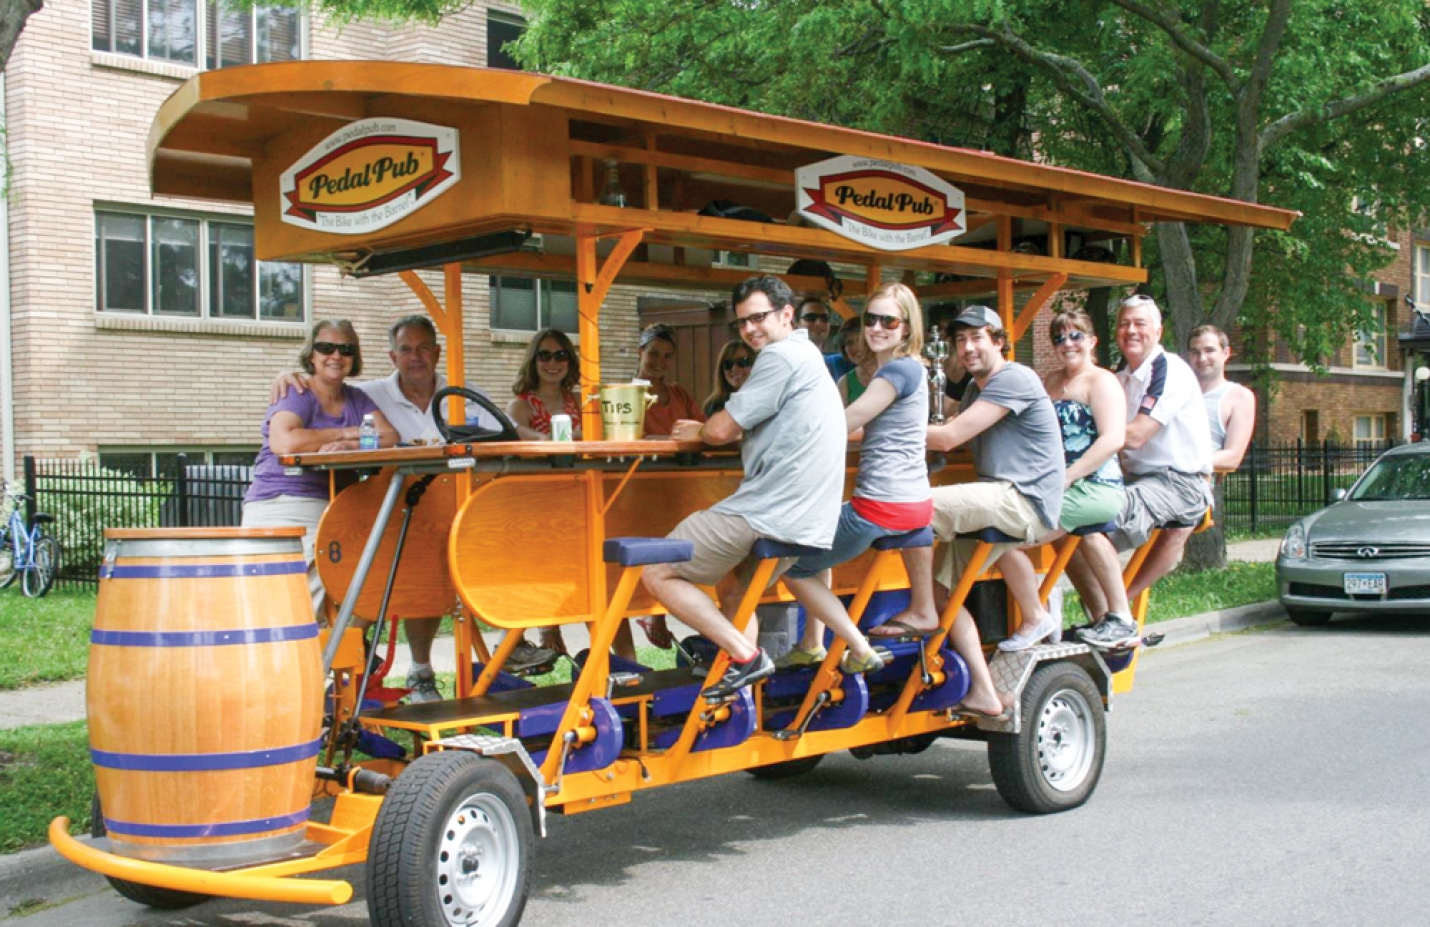 Council Delays Action On Allowing Trolley-style Pedal Powered Pub Tours